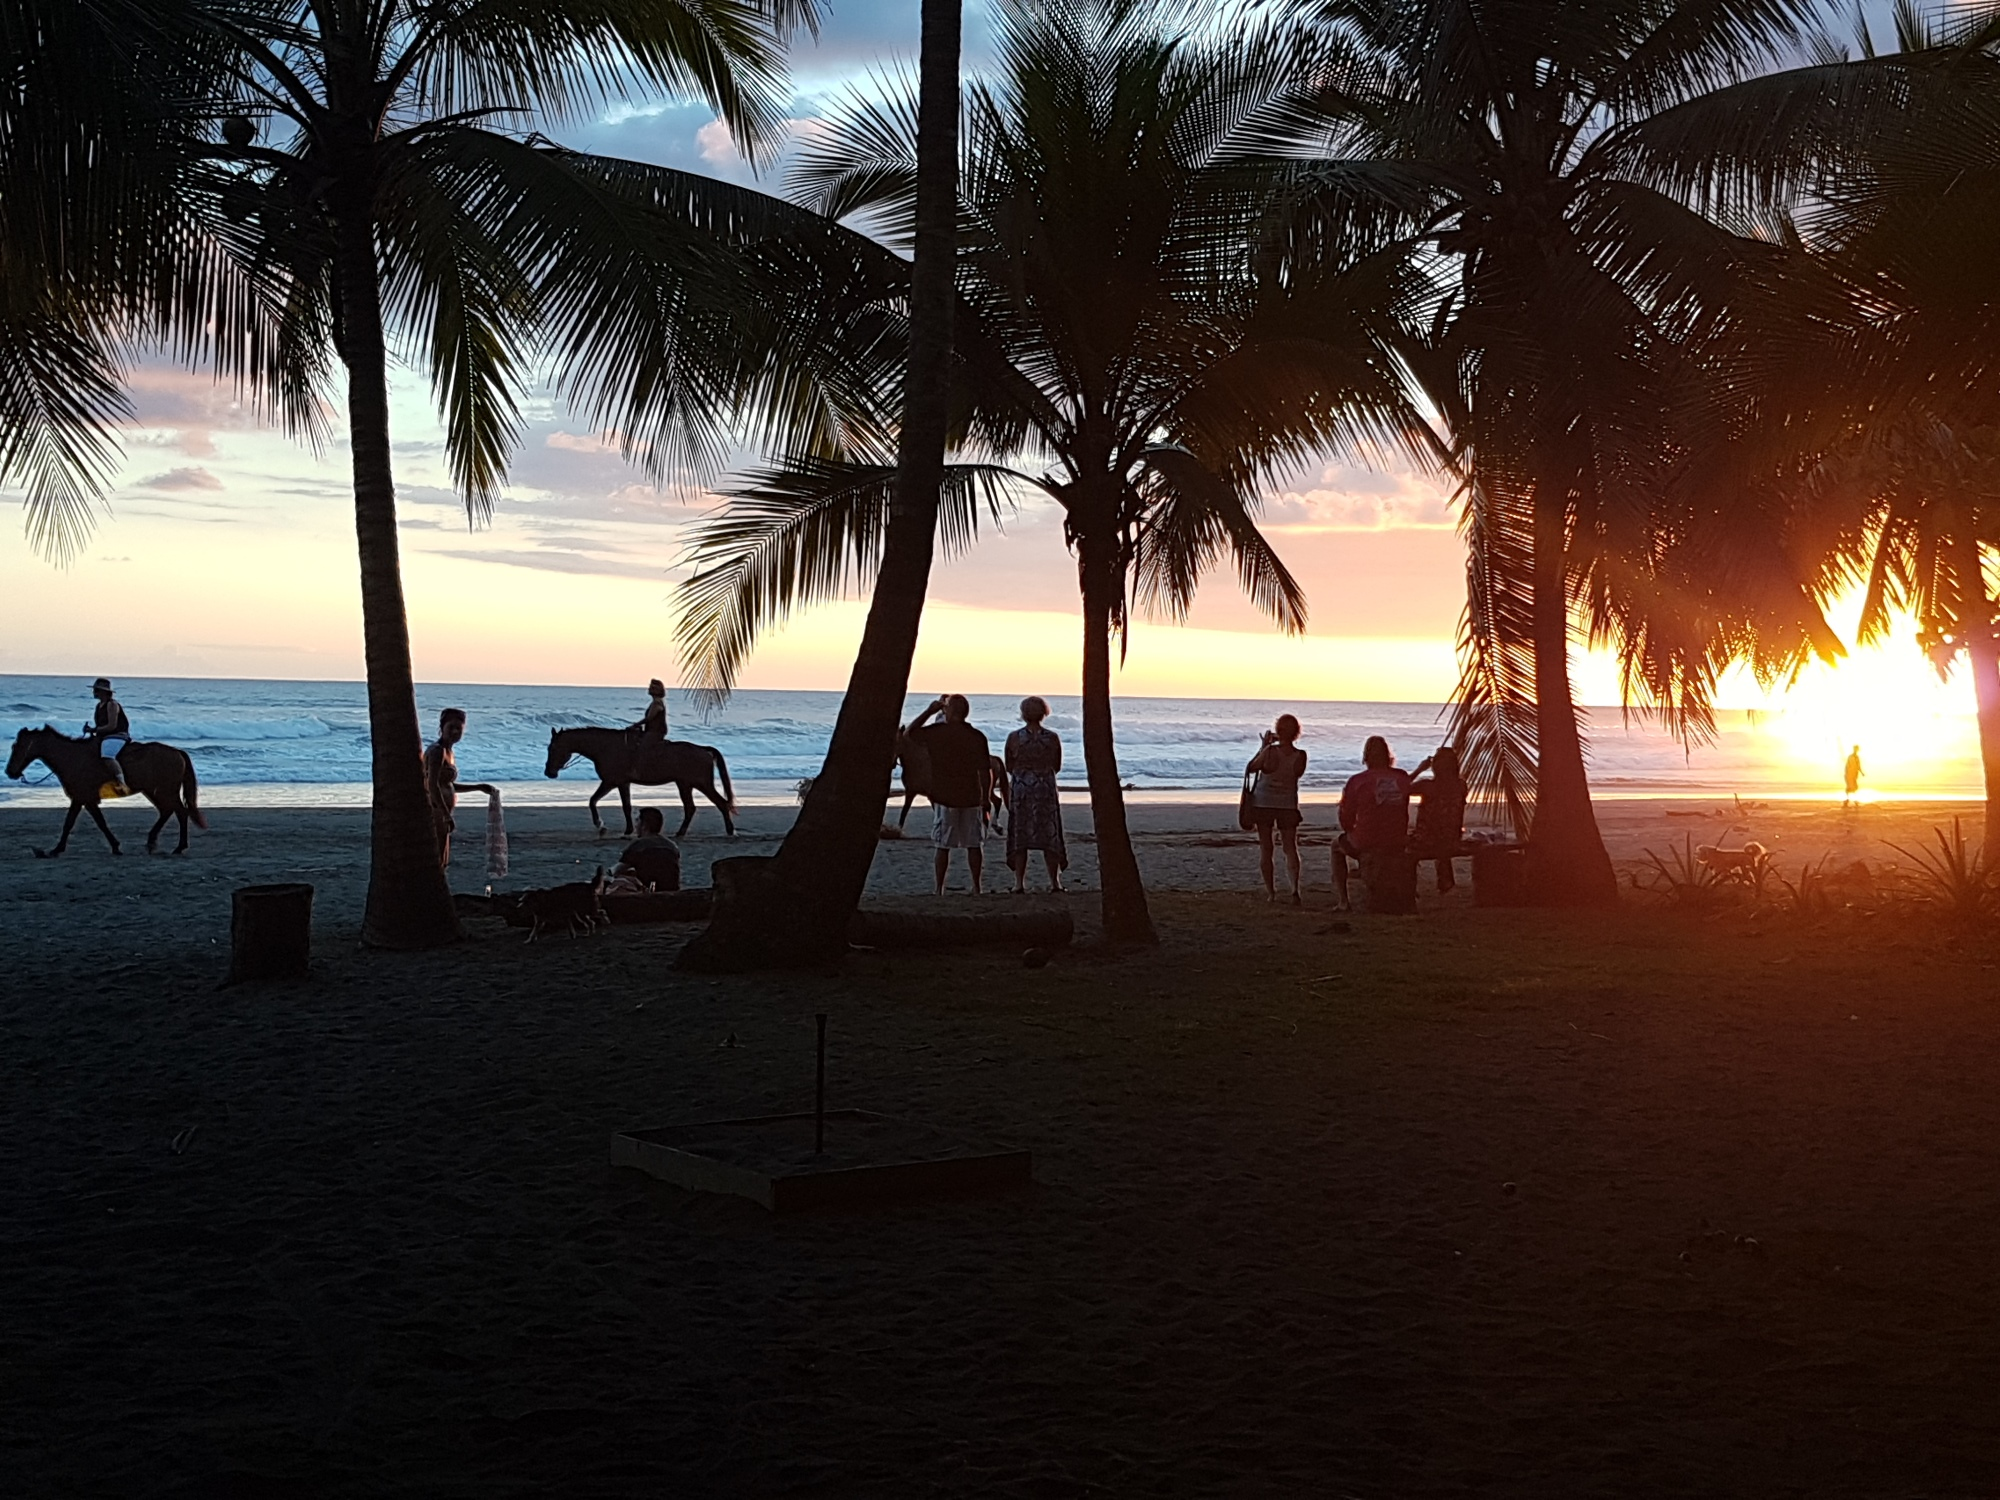 sunset horseback ride on the beach